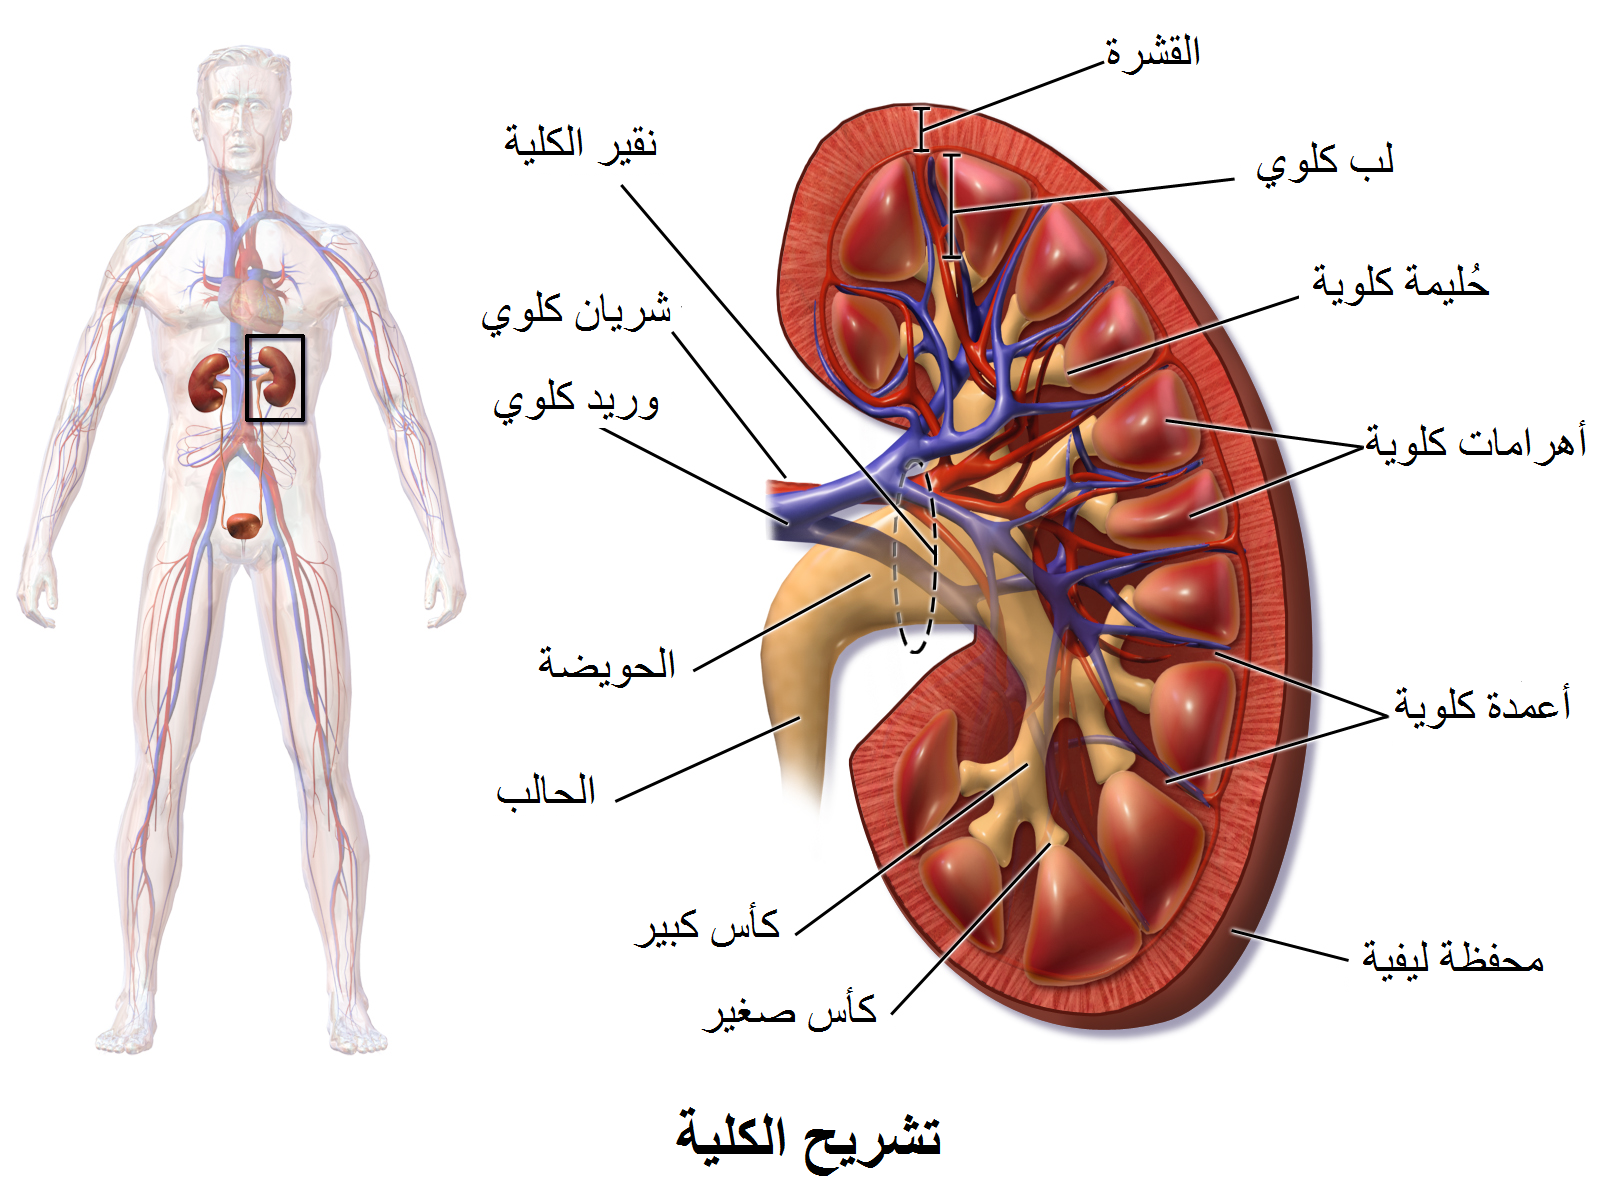 Kidney Anatomy